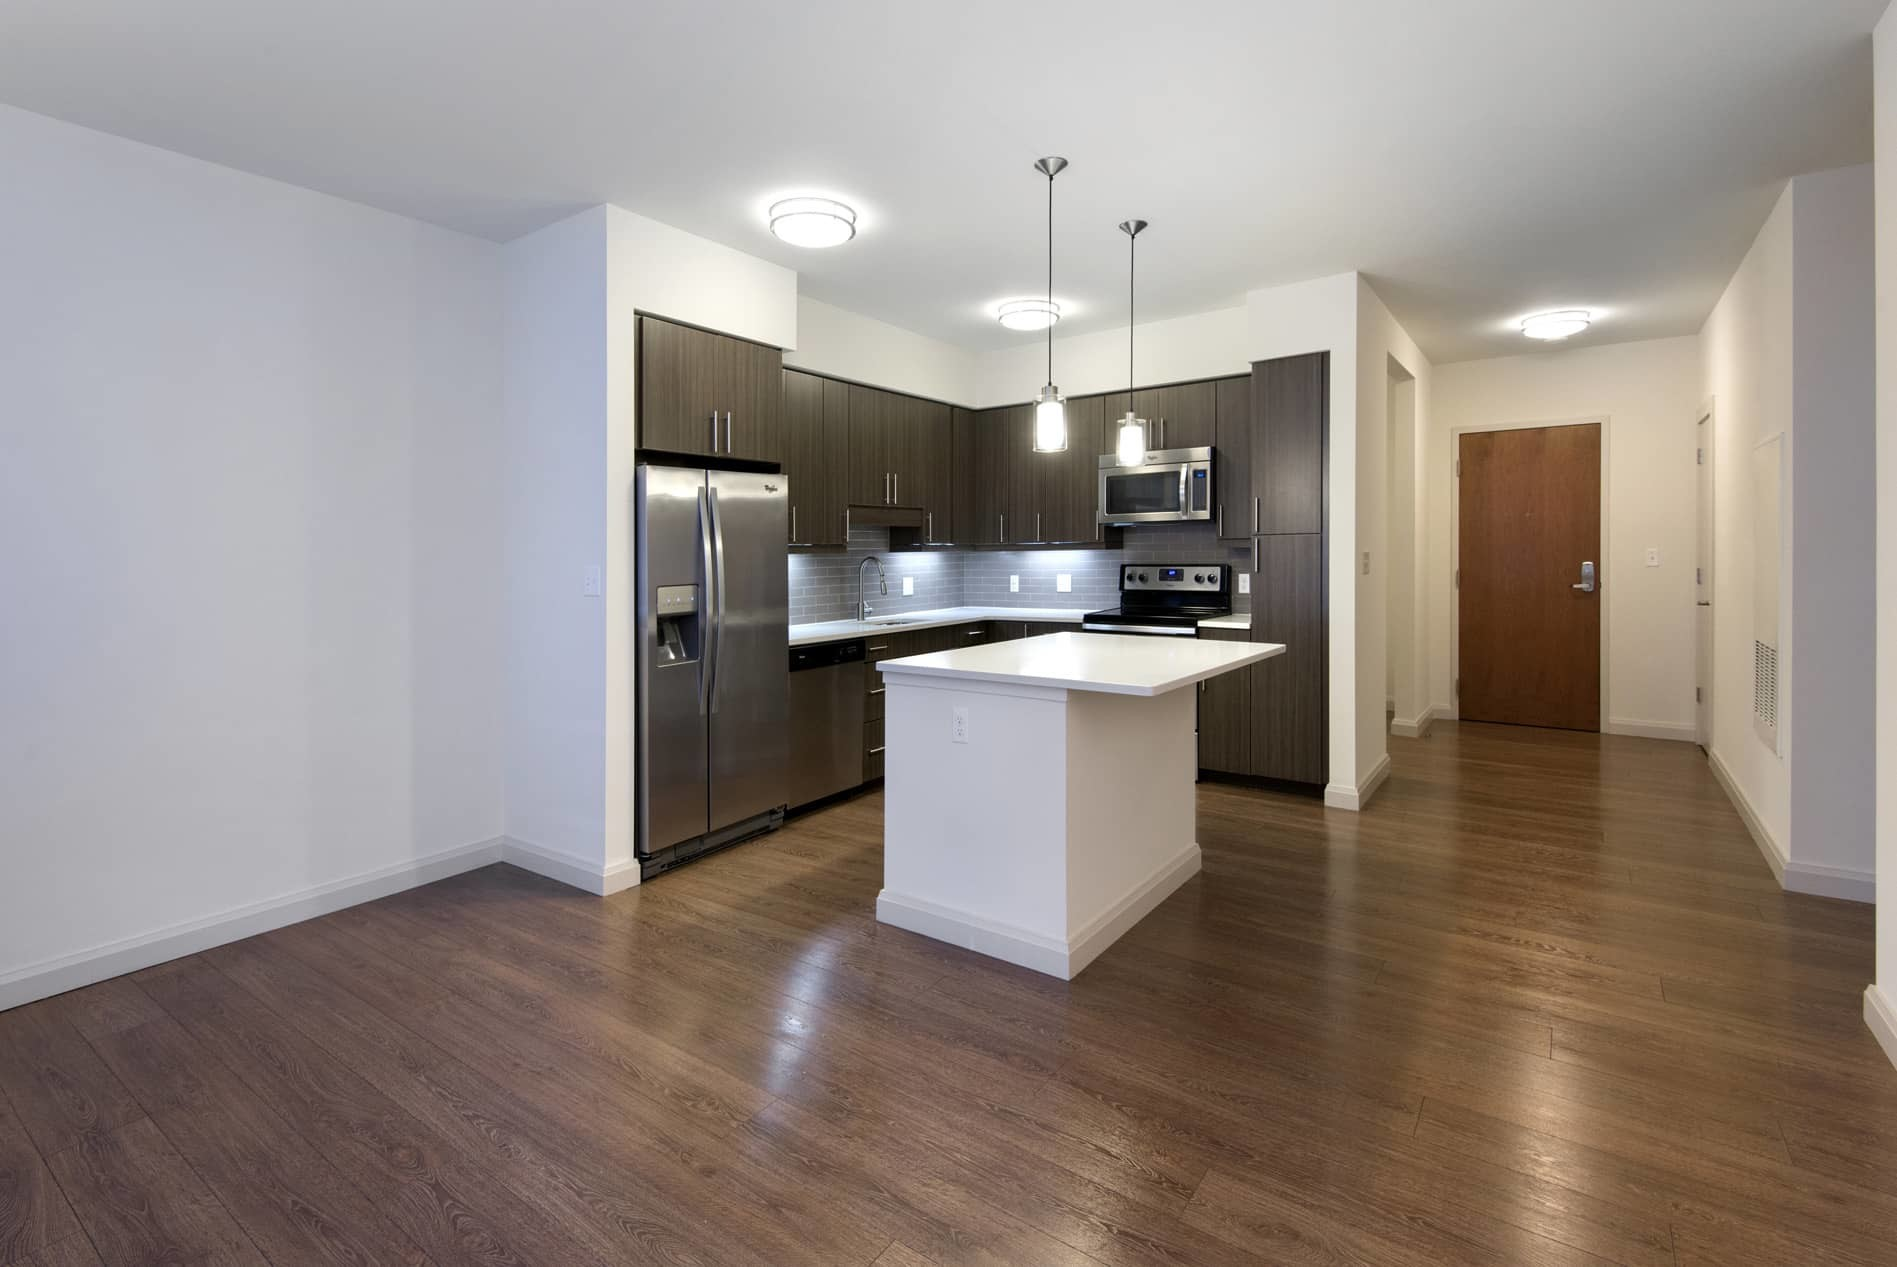 1 Bed, 1 Bath apartment in Waltham for $2,592